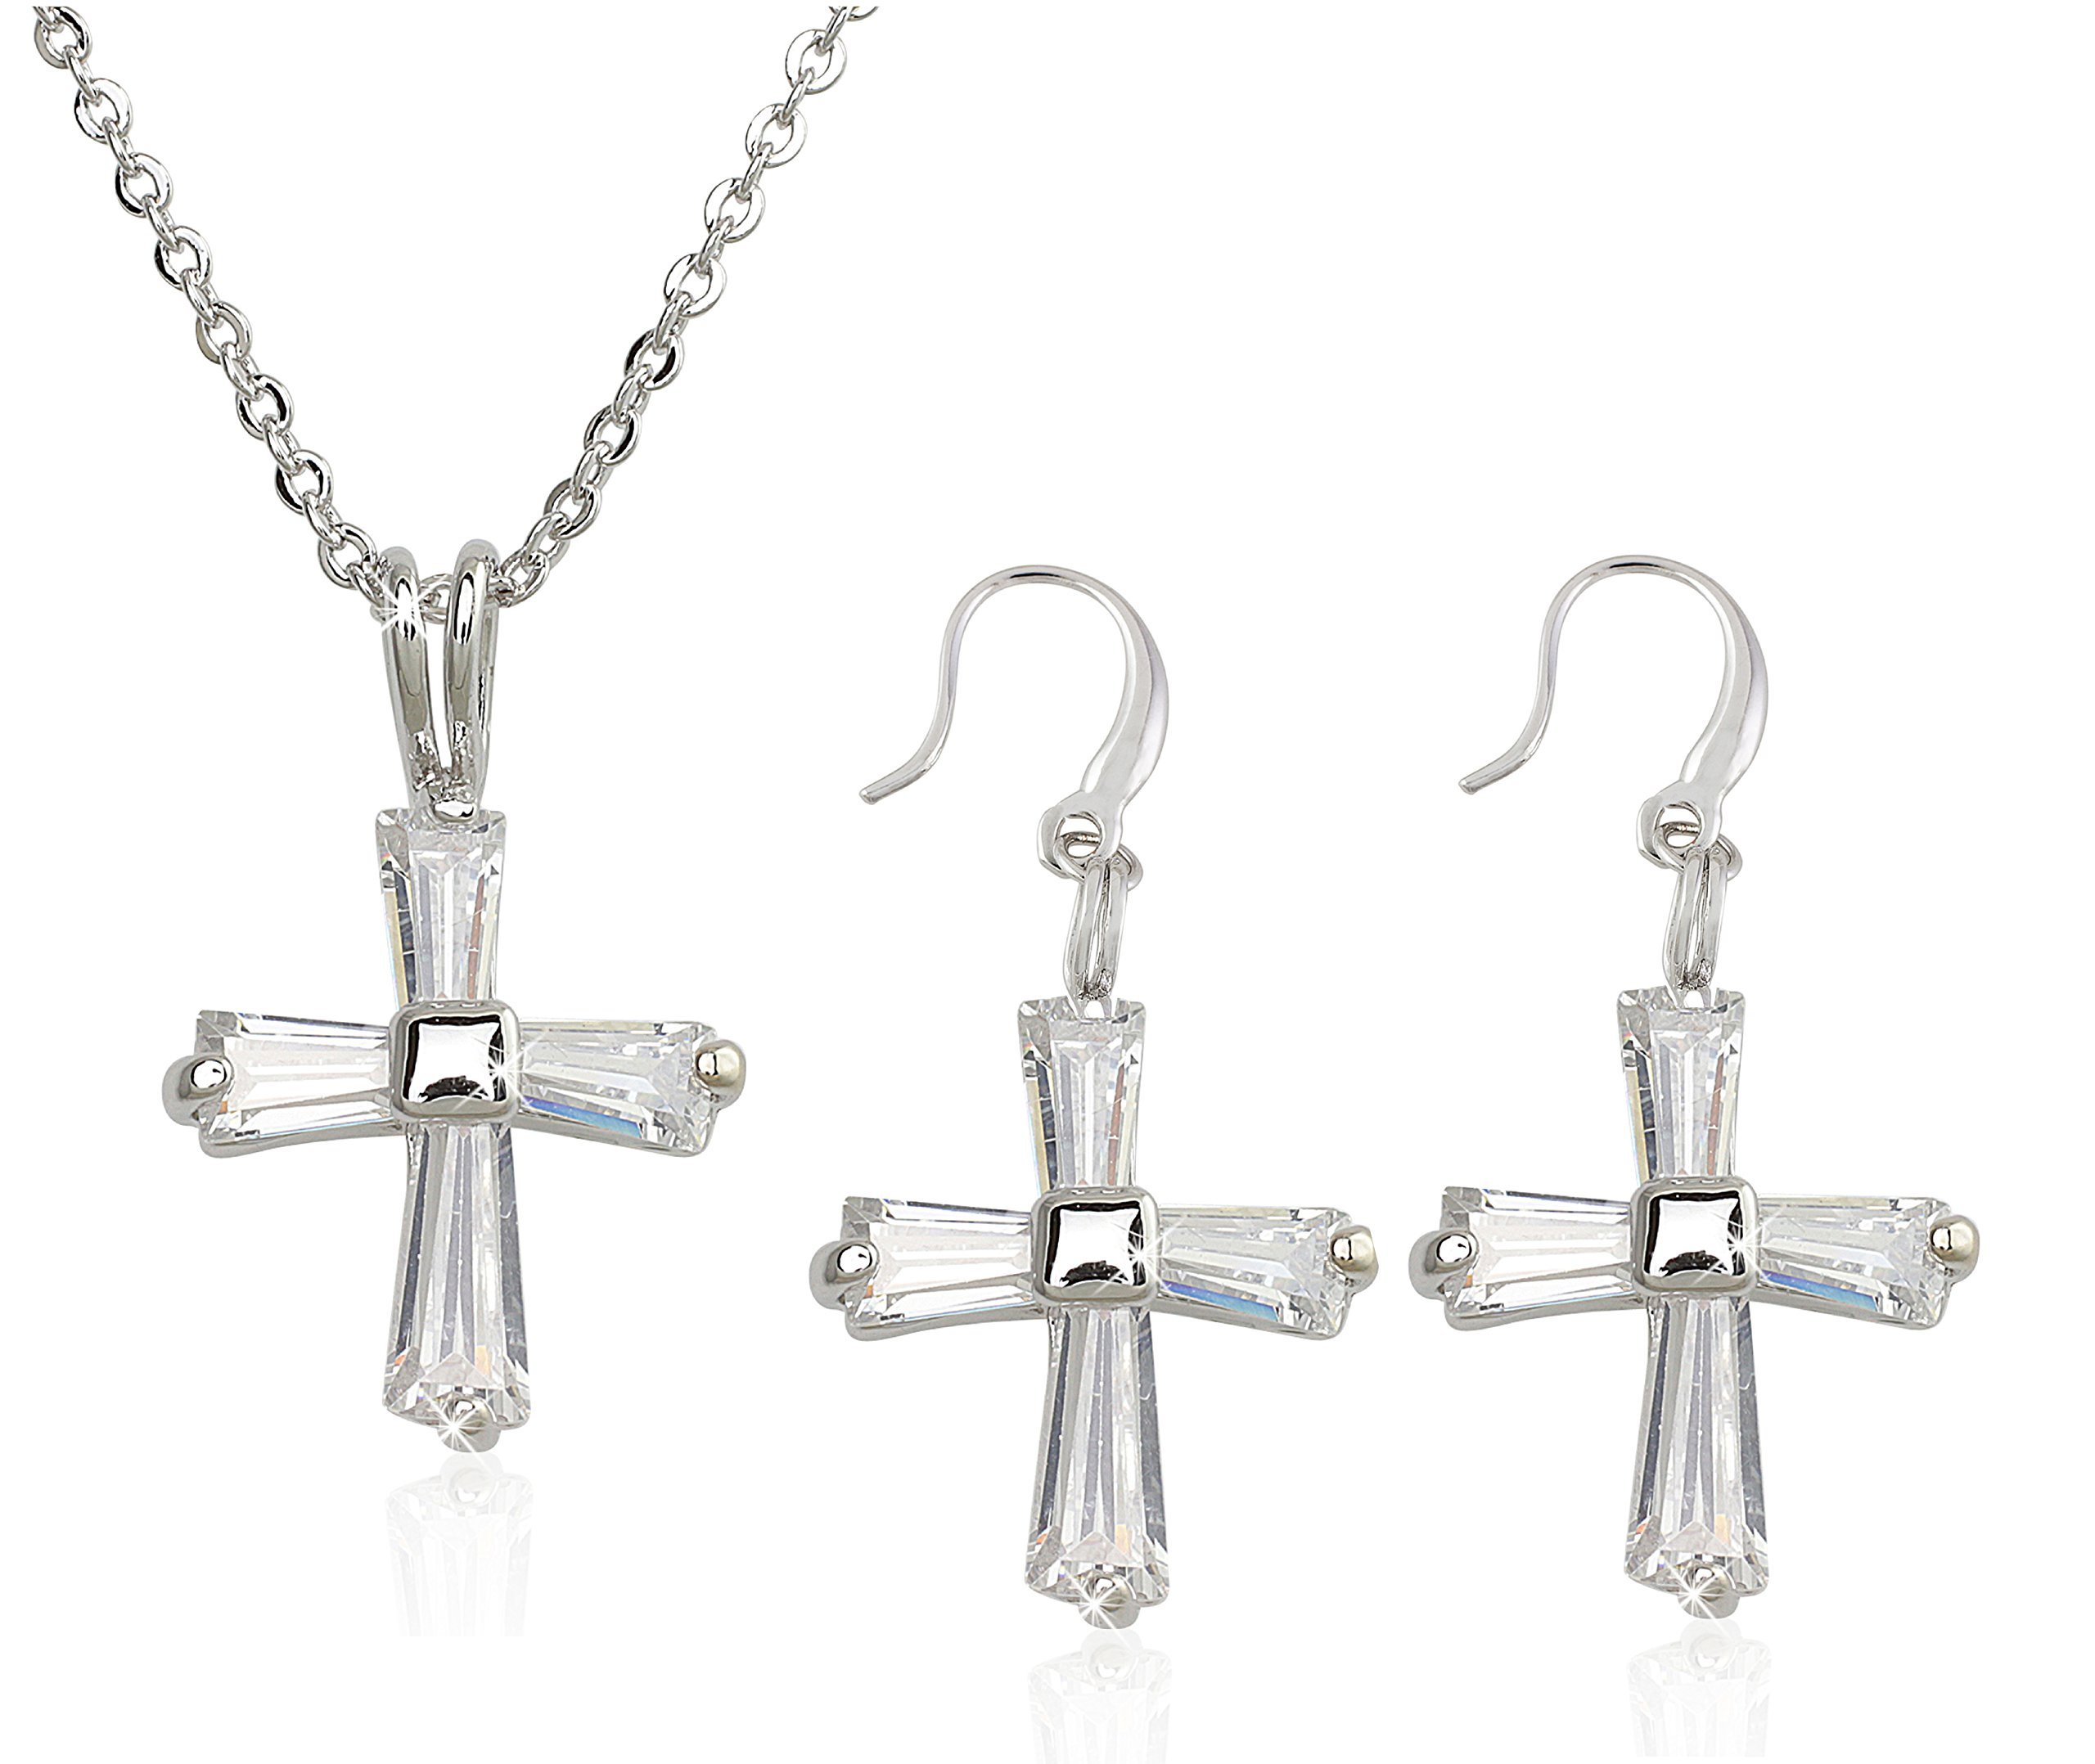 Holy Cross Necklace and Dangle Cross Earrings Set For Women - Sparkling Cubic Zirconia Gemstones That Turn Heads